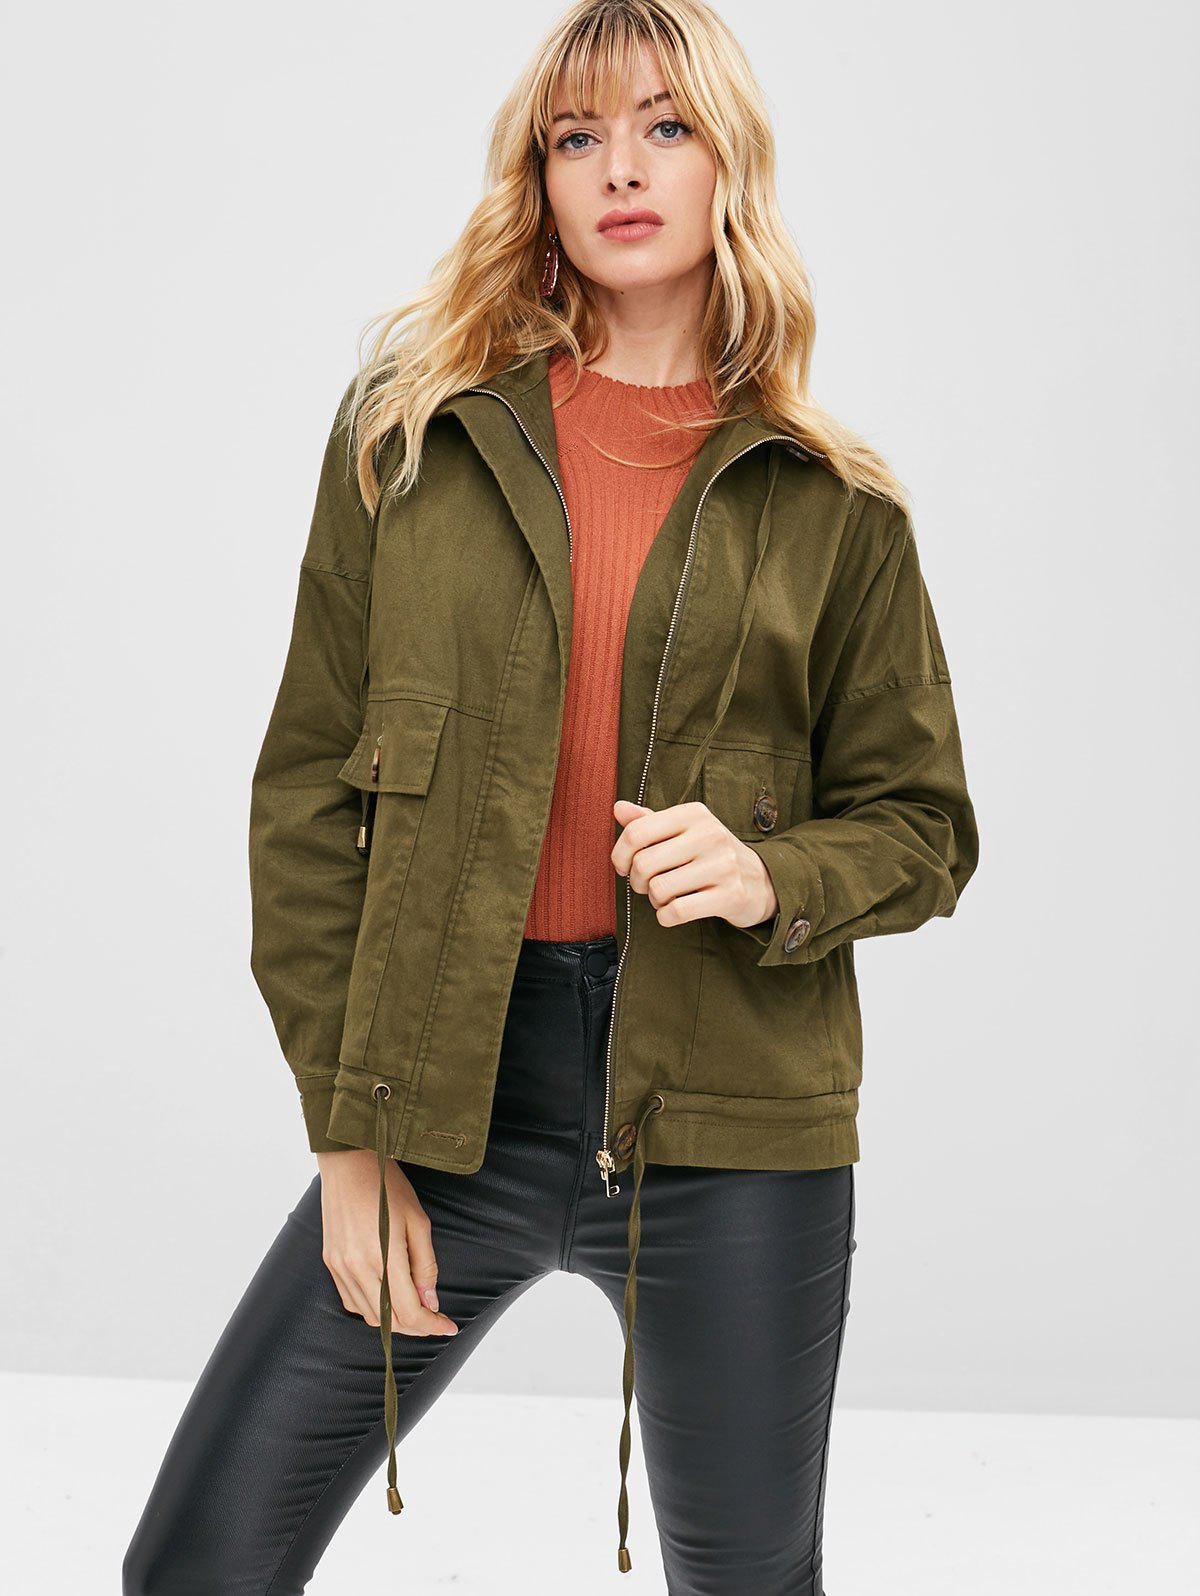 ZAFUL Zip Pocket Drop Shoulder Jacket, Army green